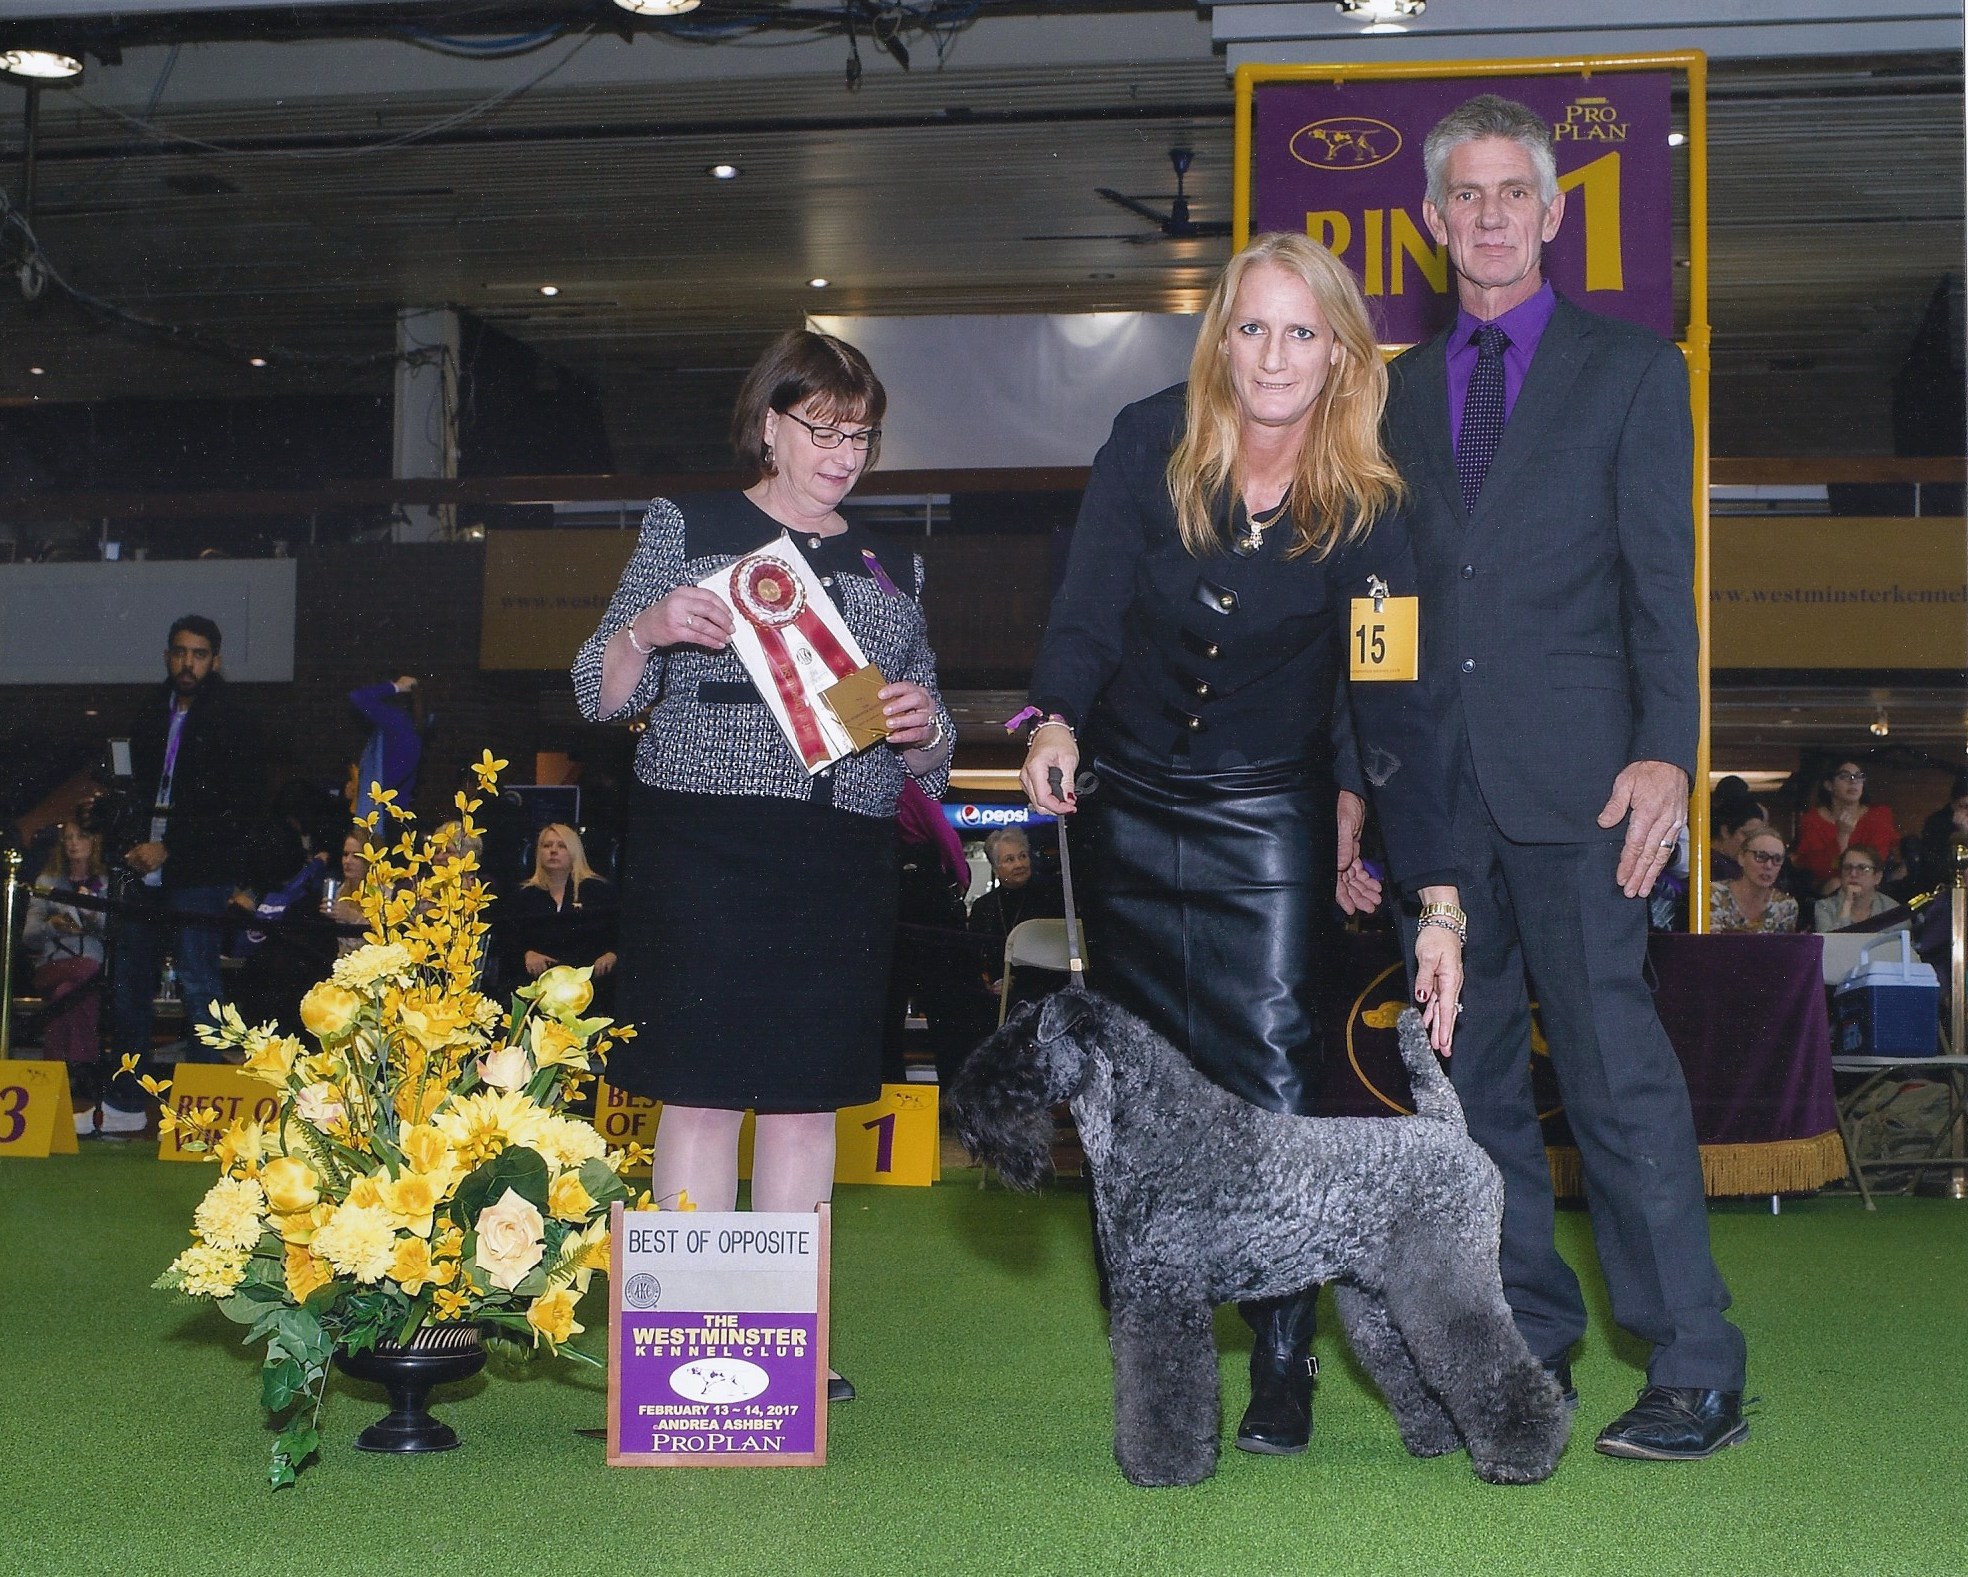 Diamonds are Forever Best Opposite Westminster Kennel Show 2017.jpg